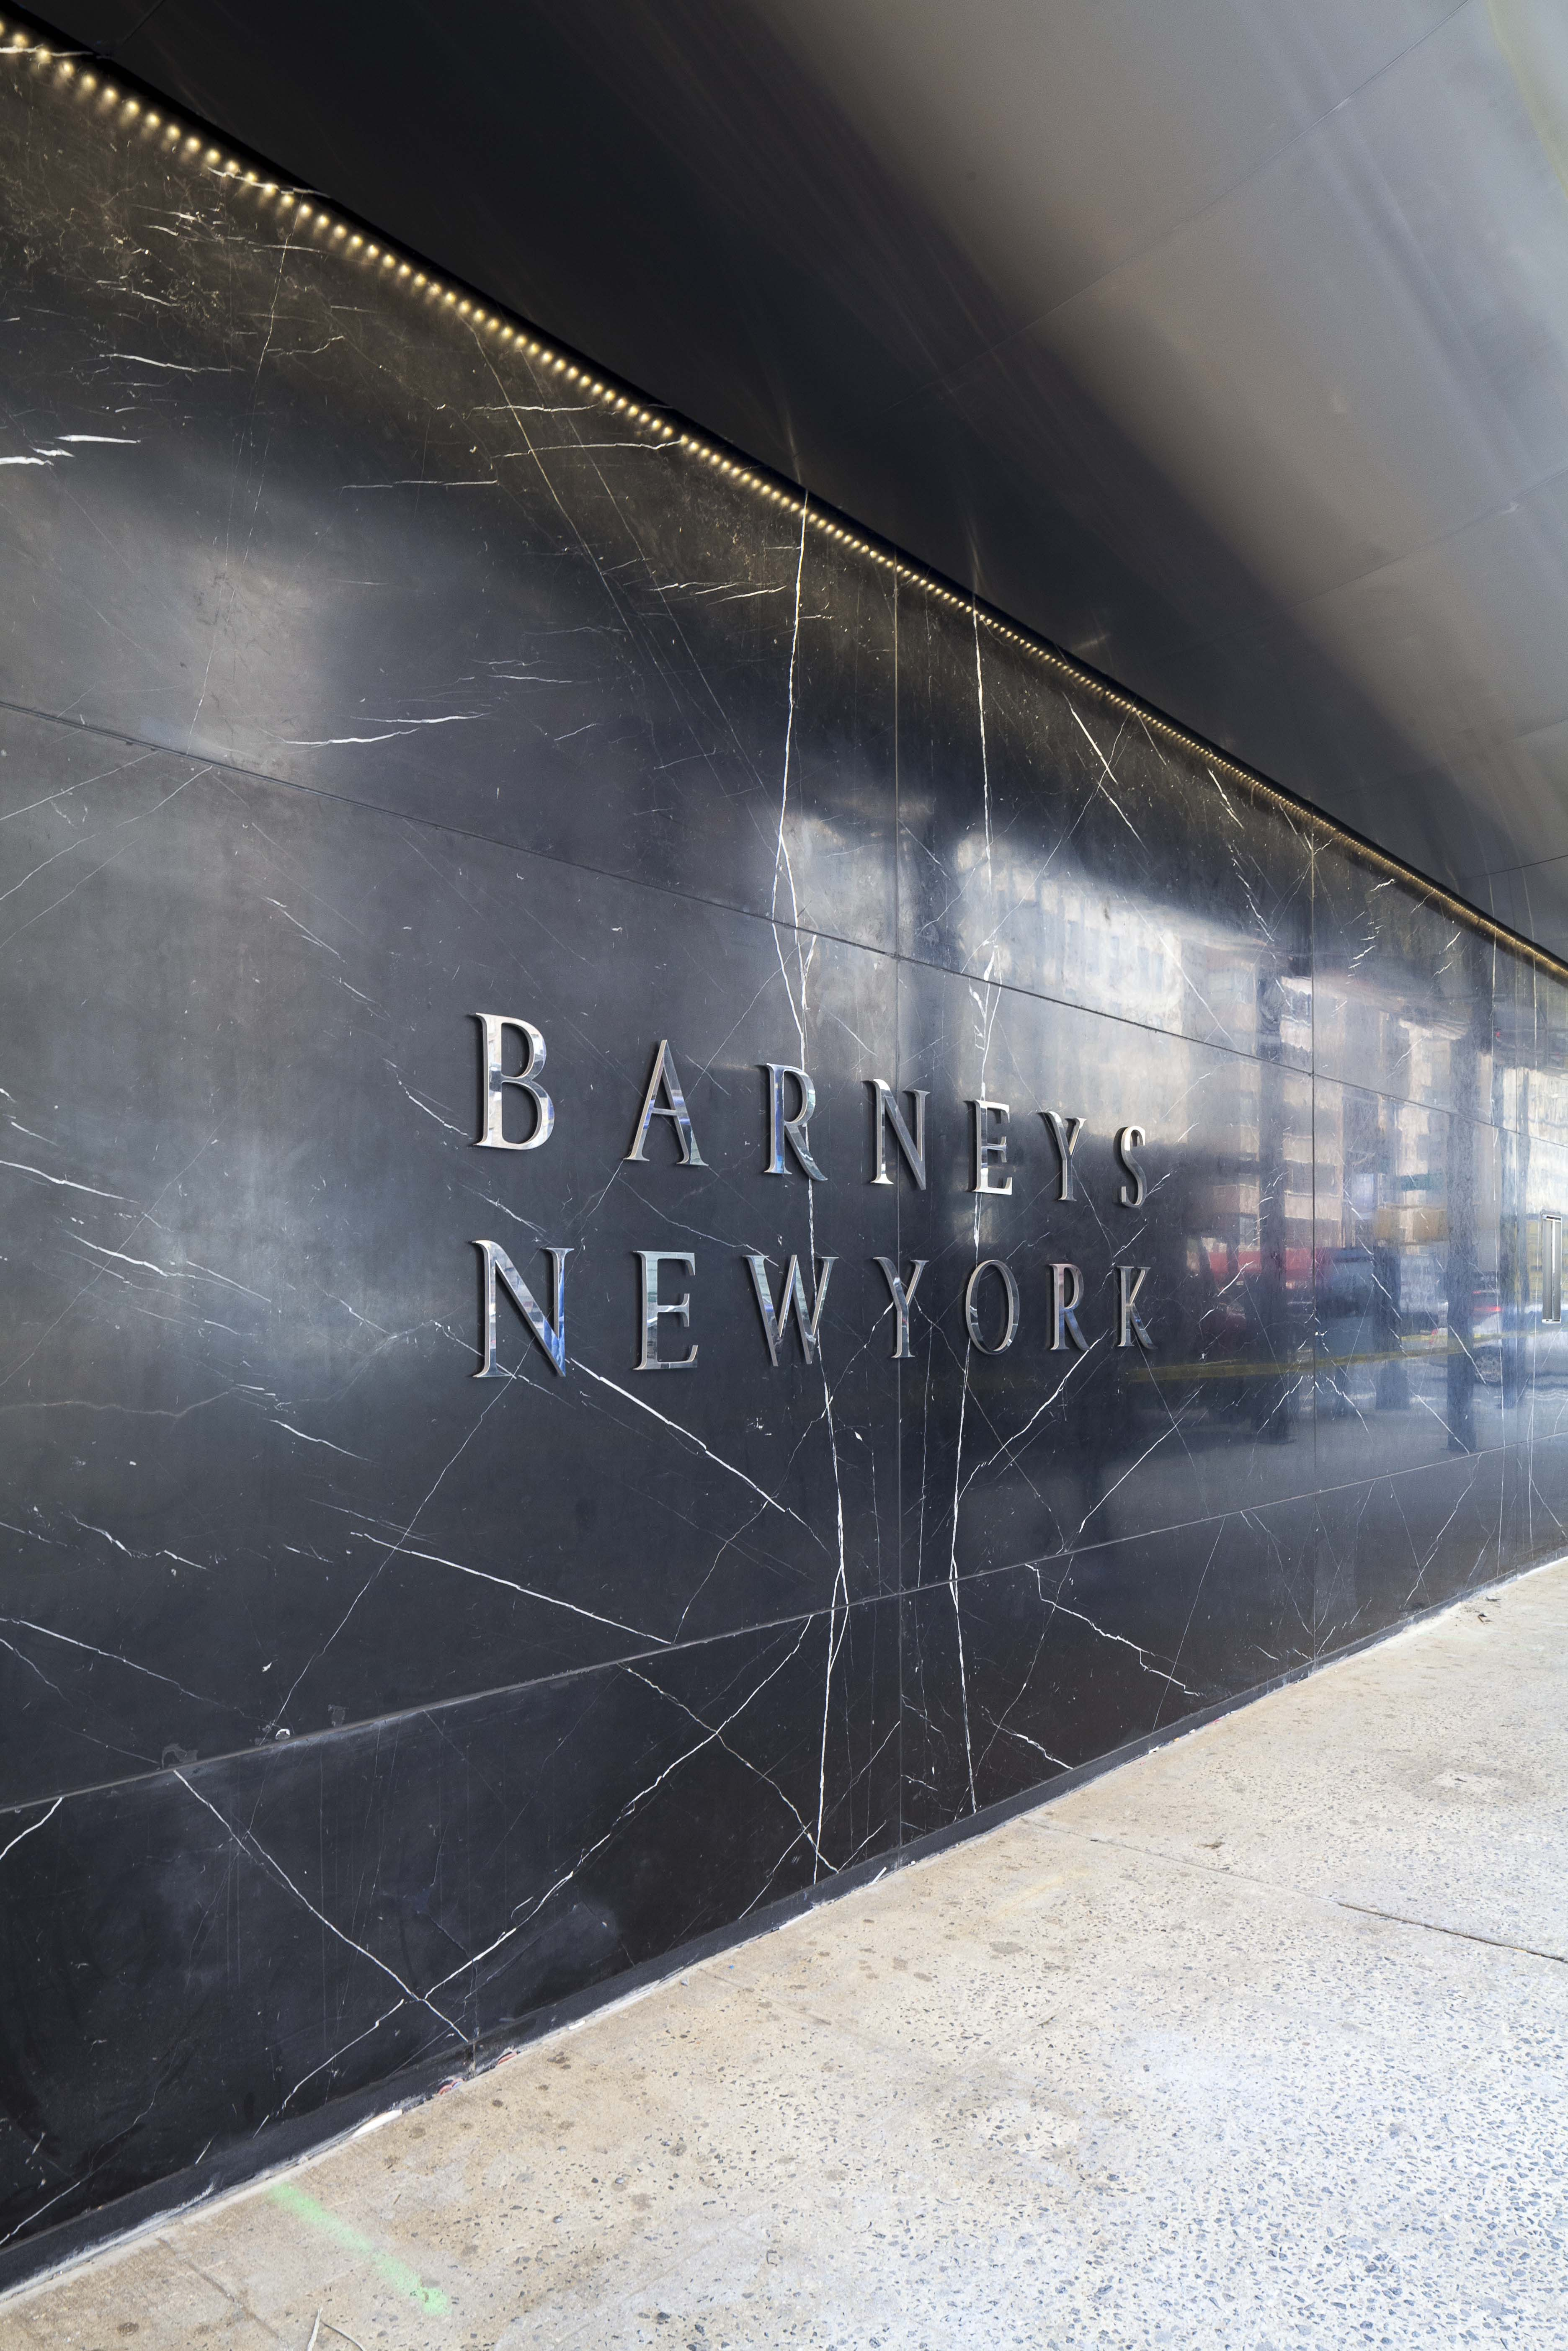 Barneys New York marble exterior.